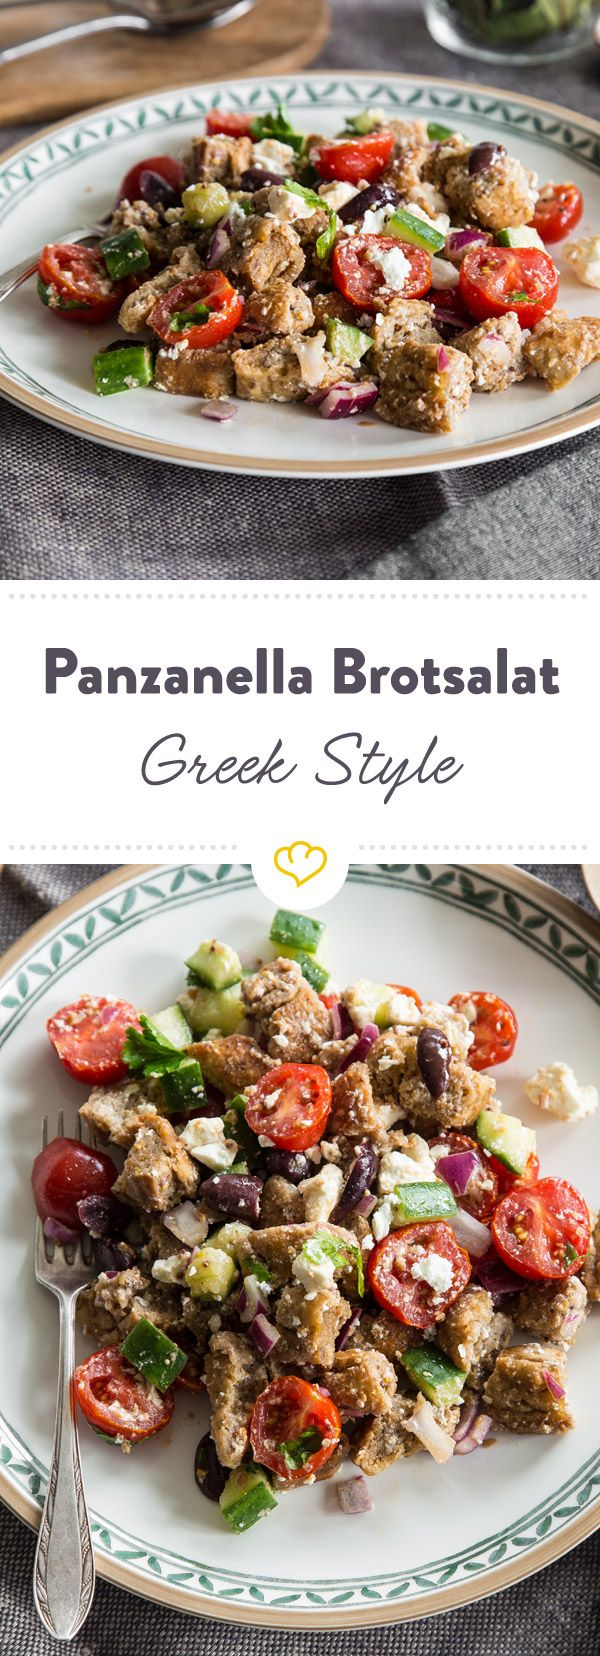 Photo of Panzanella Brotsalat Greek Style